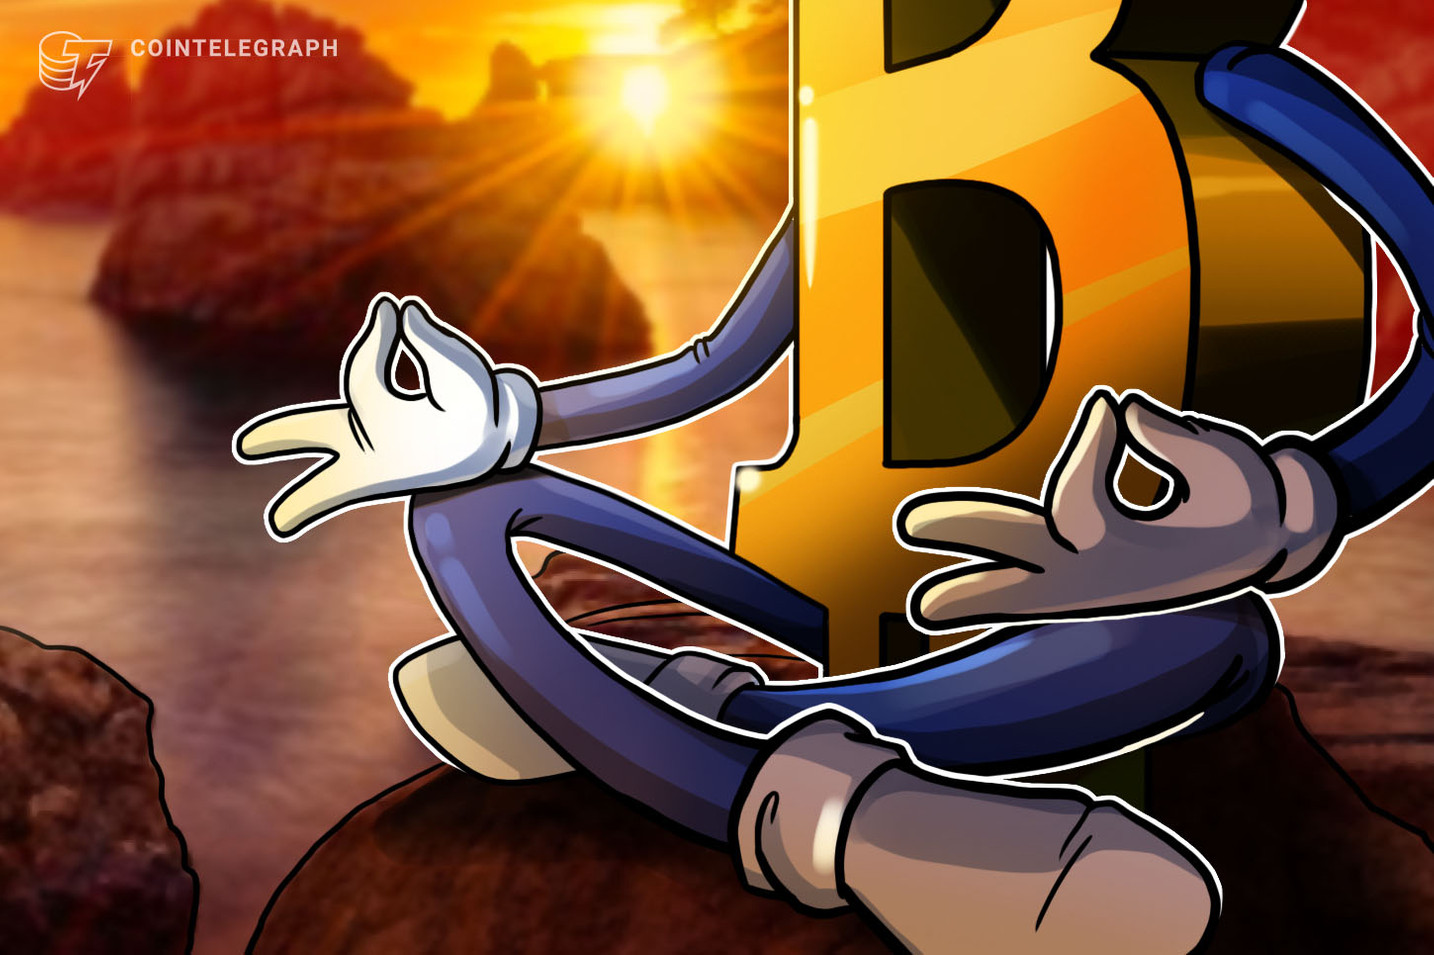 'Sustained institutional buying' will hold Bitcoin above $50K: CrossTower